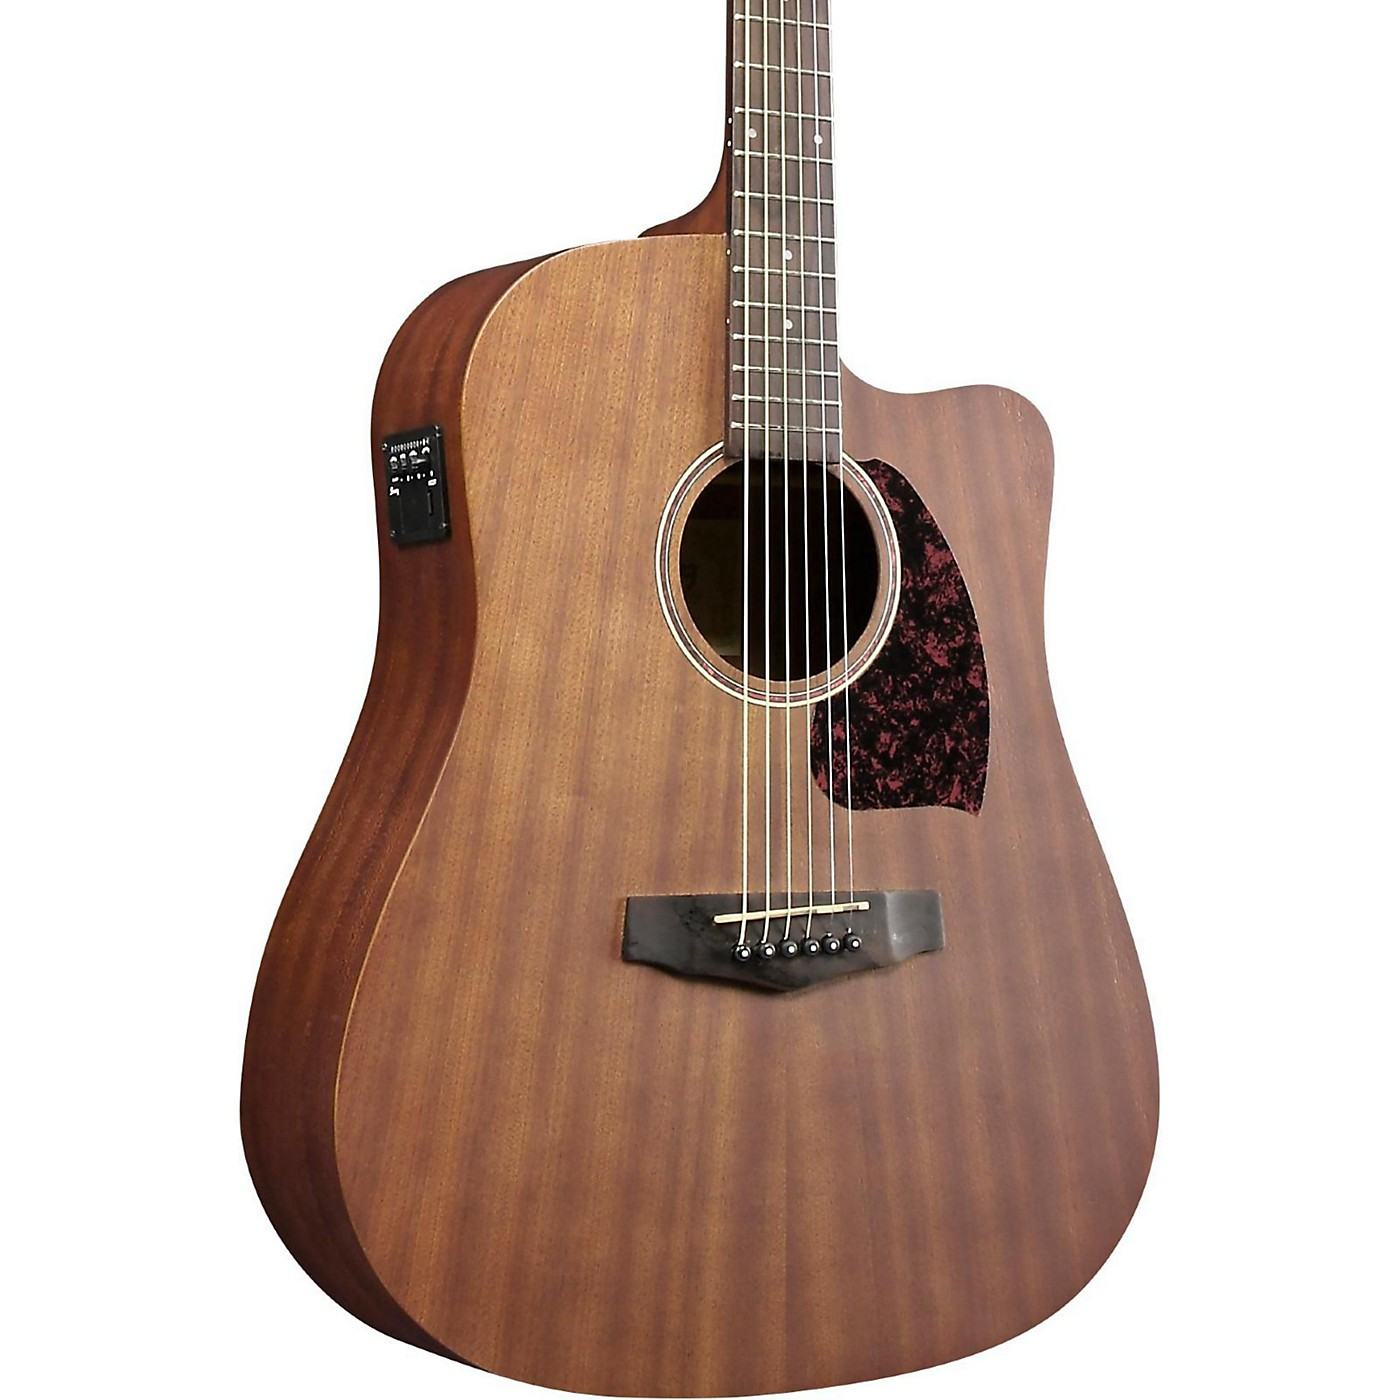 Ibanez Performance Series PF12MHCEOPN Mahogany Dreadnought Acoustic-Electric Guitar thumbnail